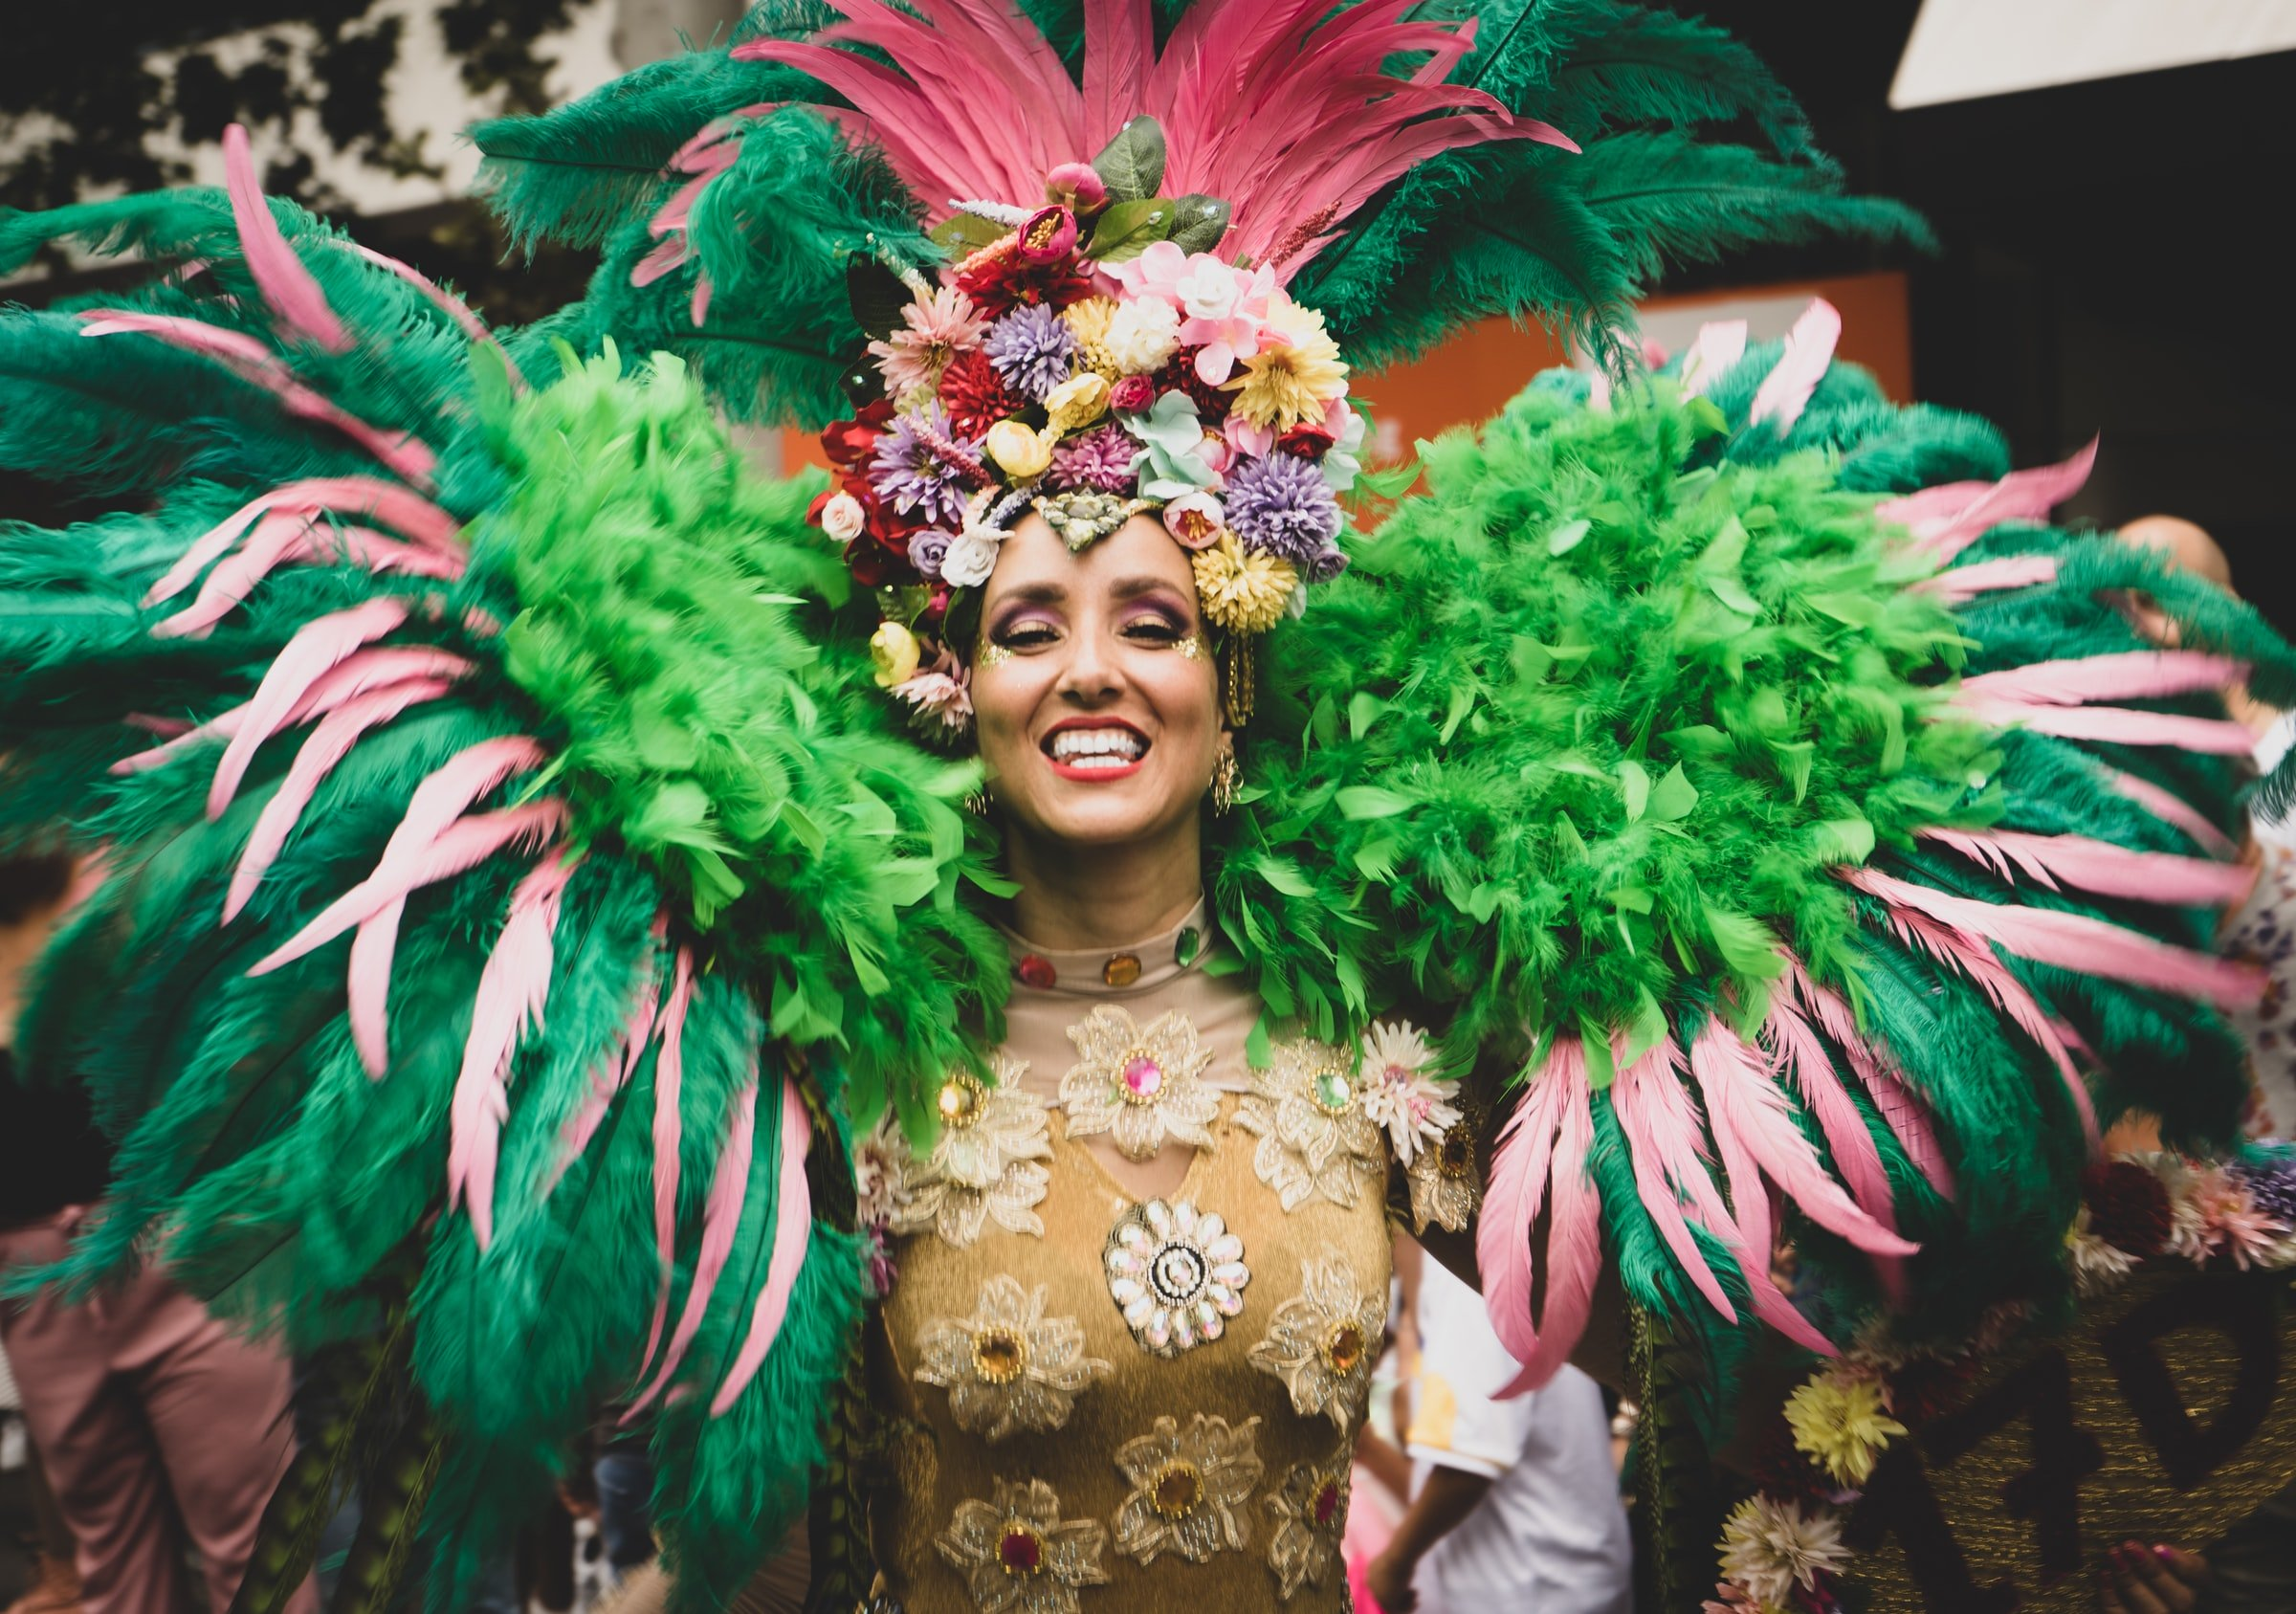 Carnival photo of woman in Carnival costume